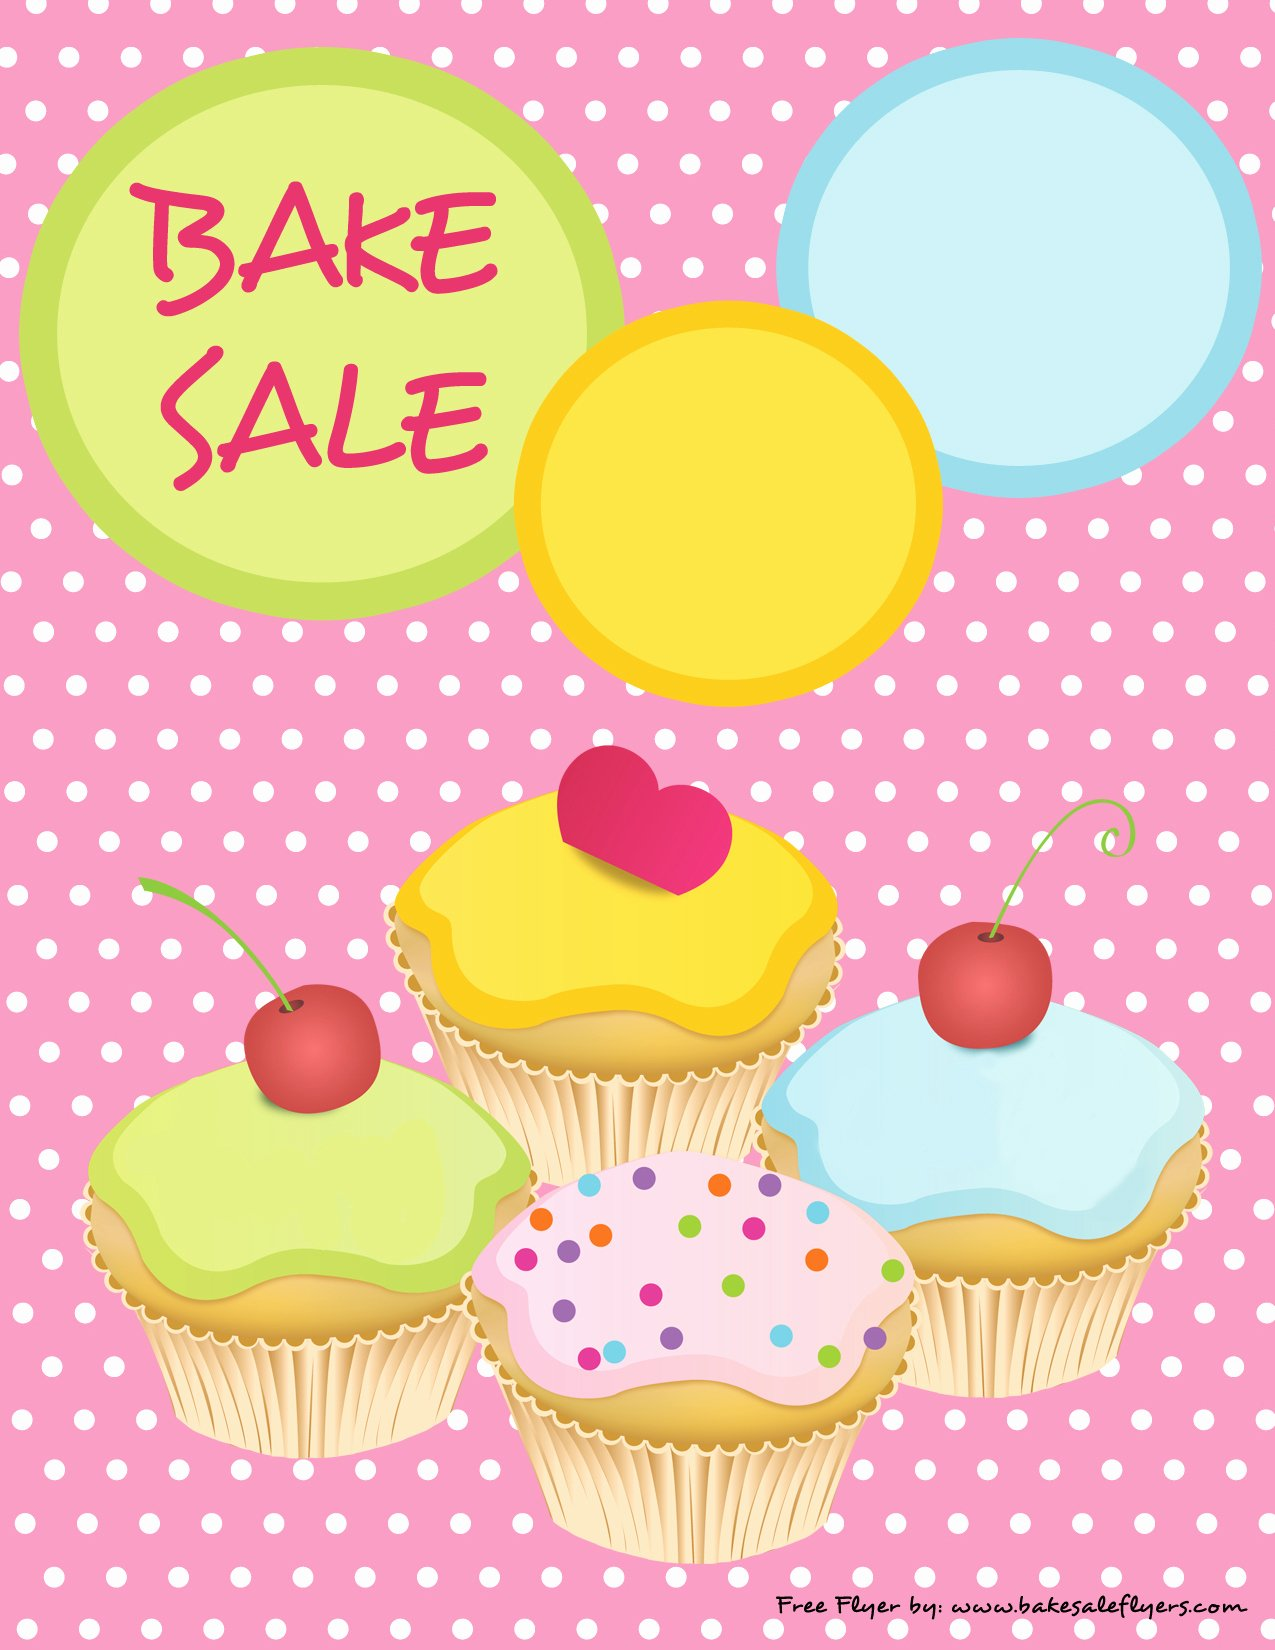 Bake Sale Flyer Template Free New Bake Sale Flyers – Free Flyer Designs